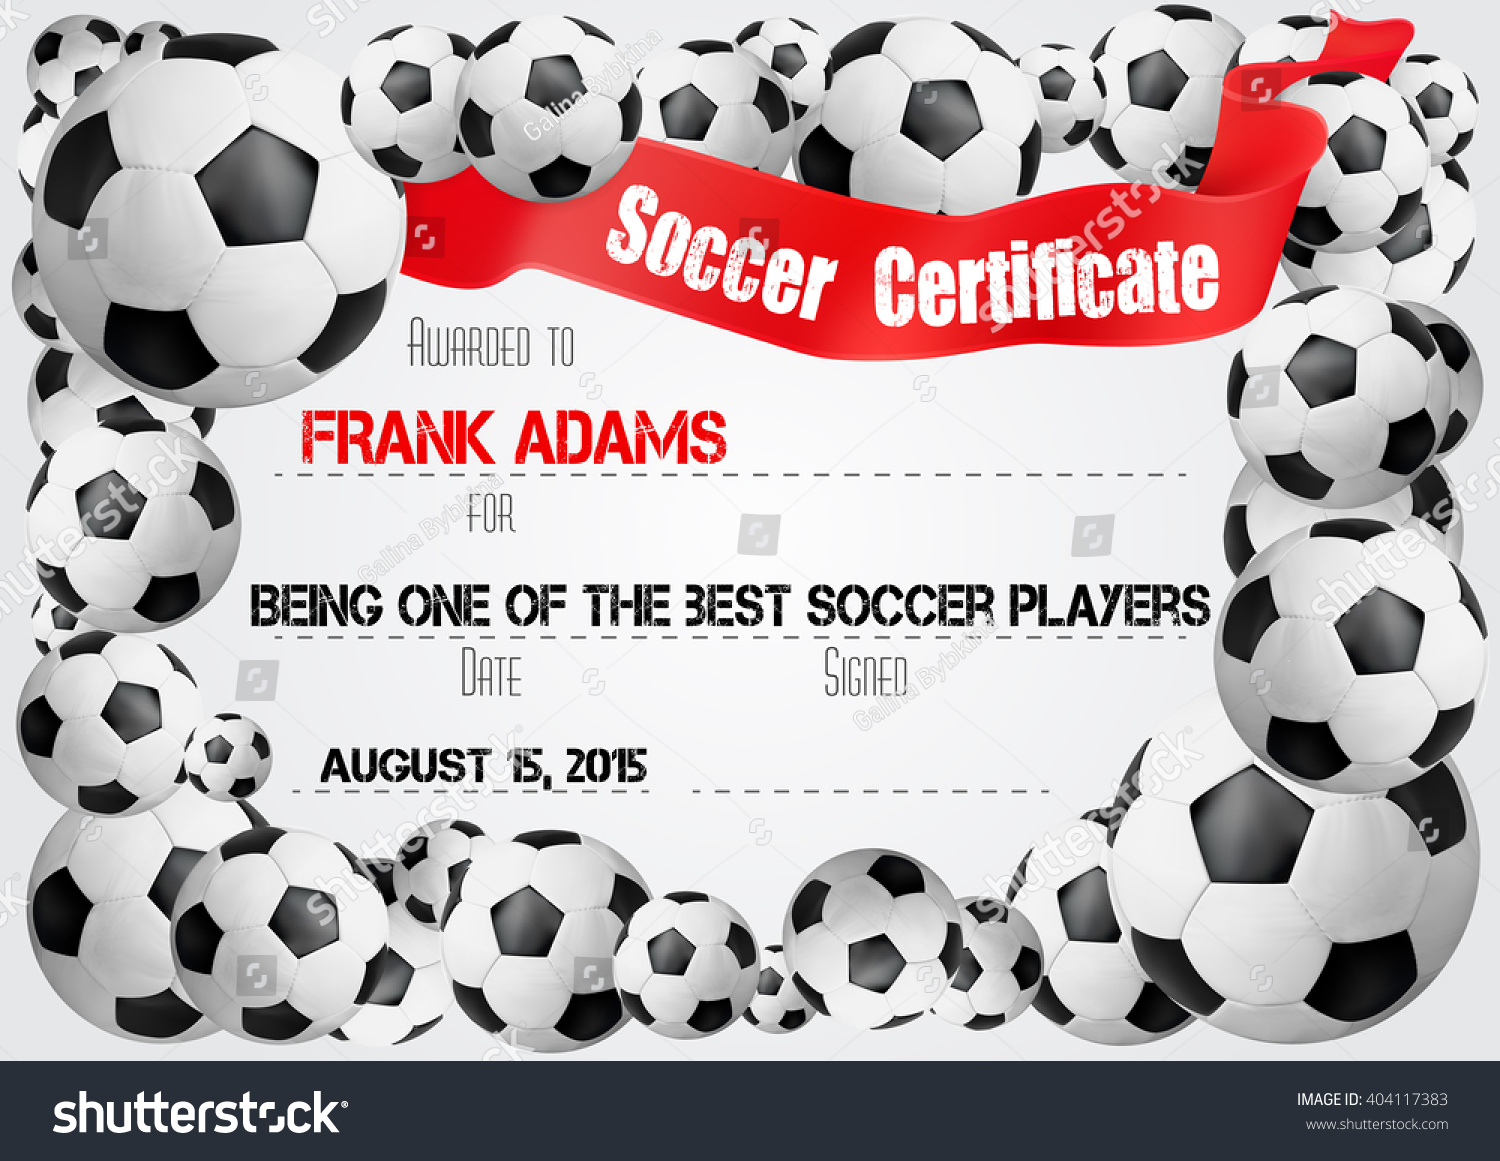 Soccer certificate template football ball icons stock vector soccer certificate template with football ball icons on the border and red ribbon banner for 1betcityfo Gallery